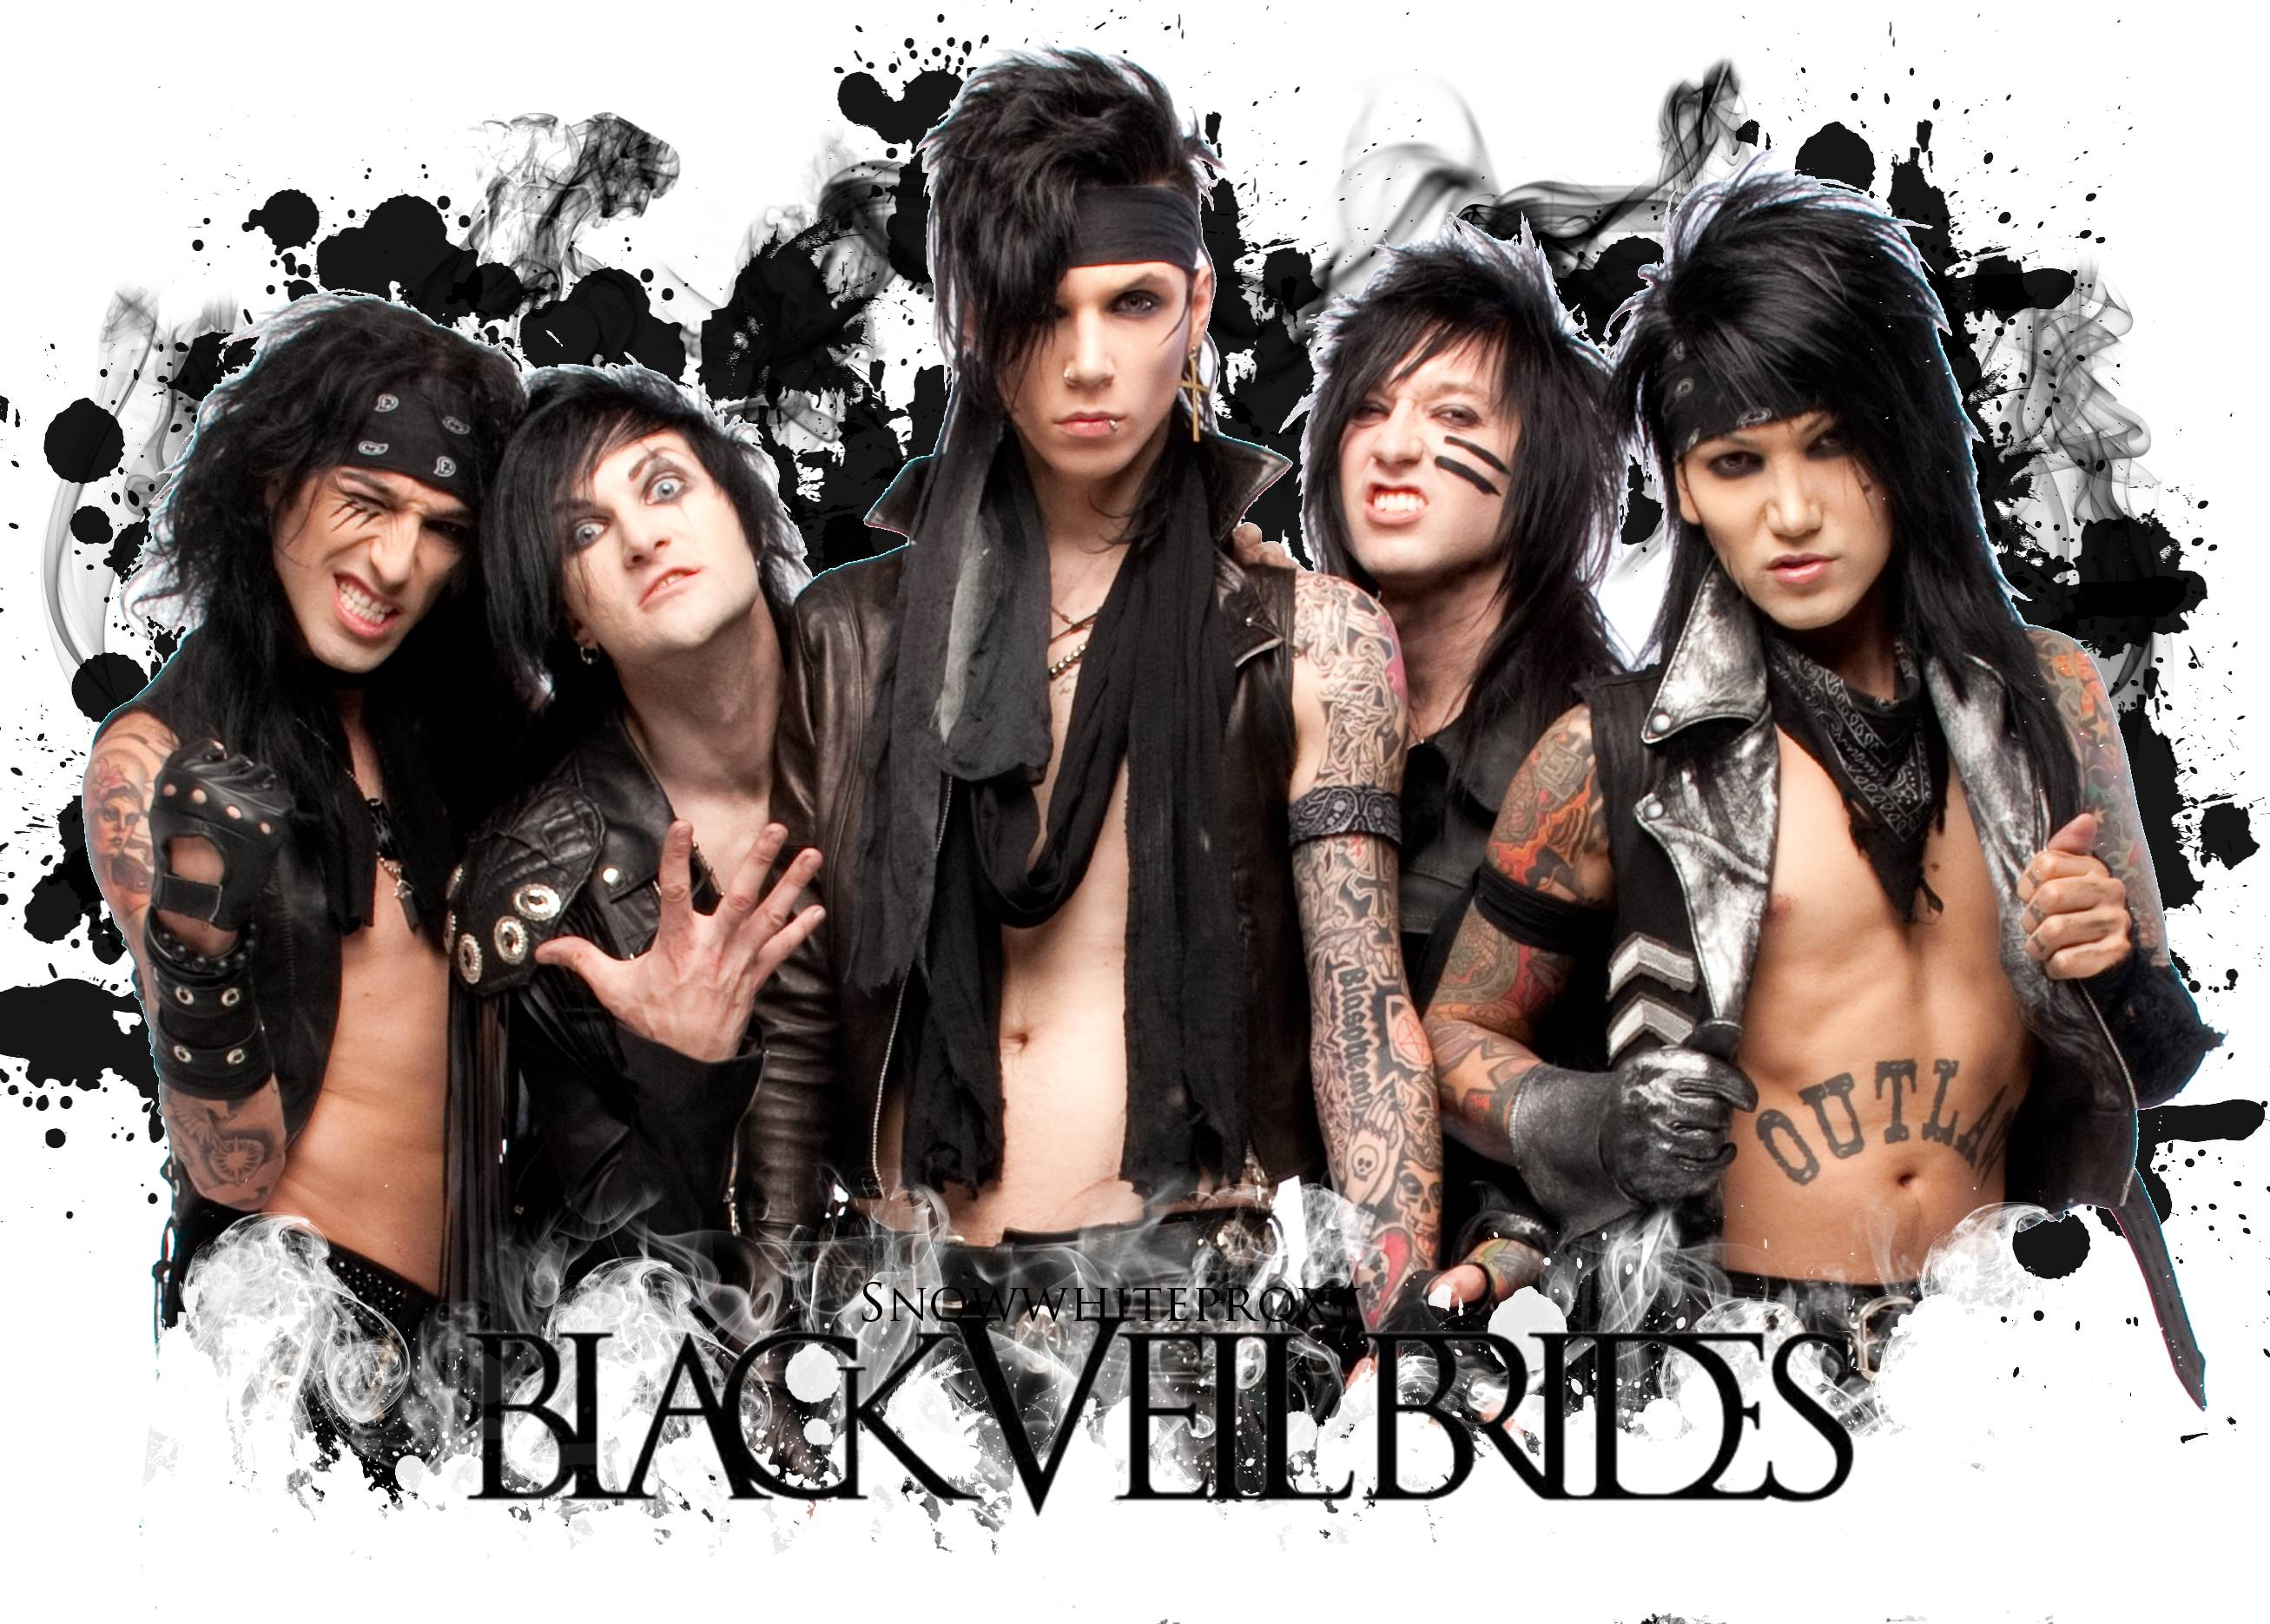 Black Veil Brides Backgrounds 2614x1870